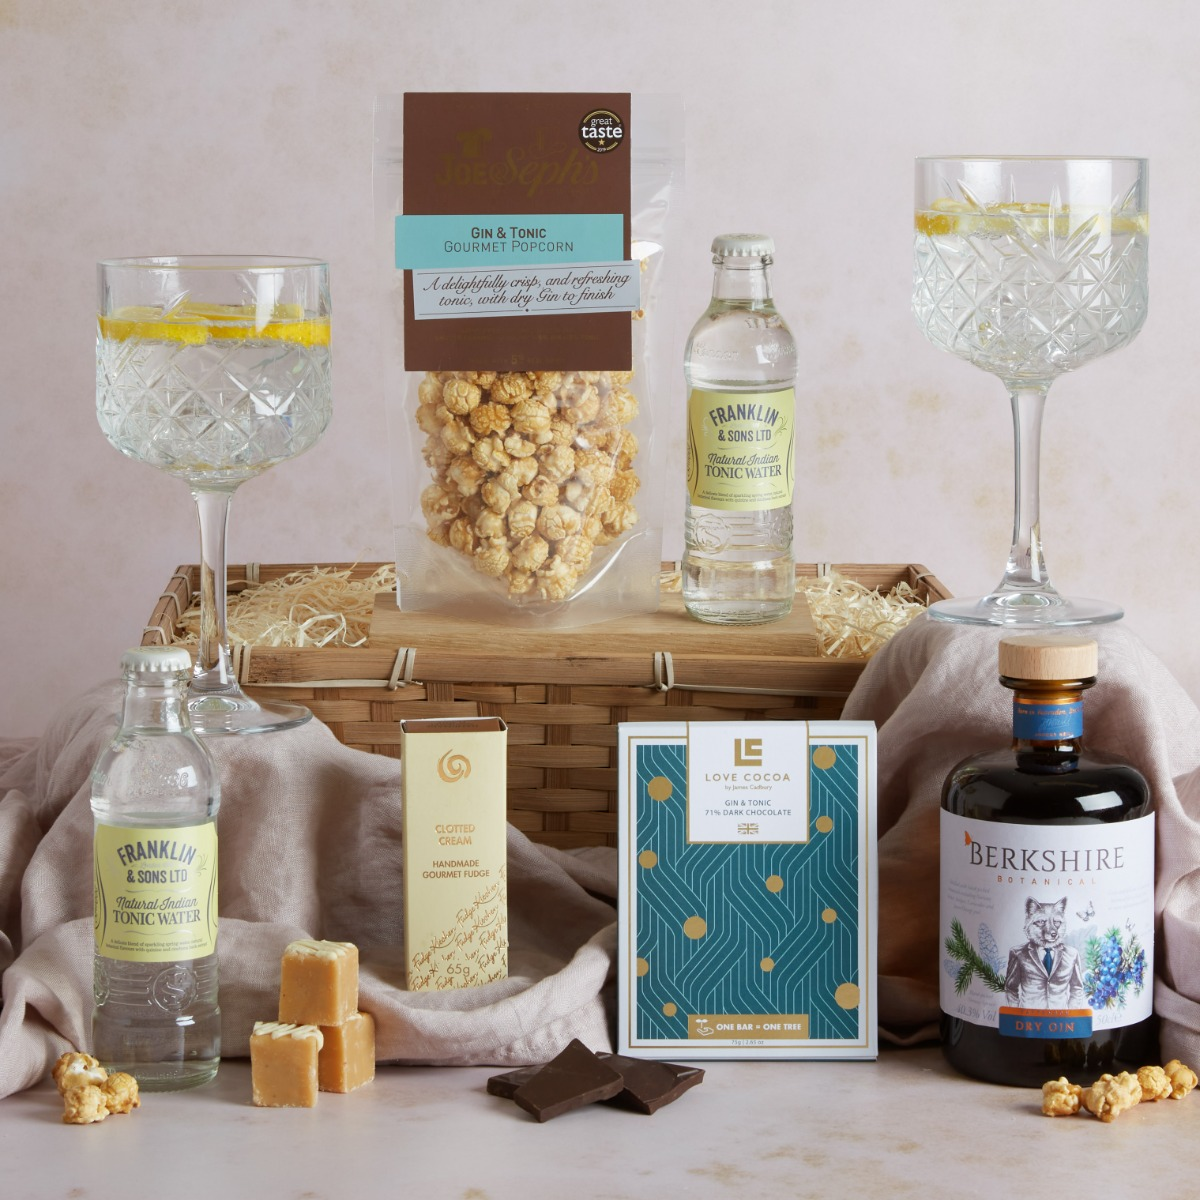 The Luxury Gin Hamper Luxury Gin Gifts Hampers.com